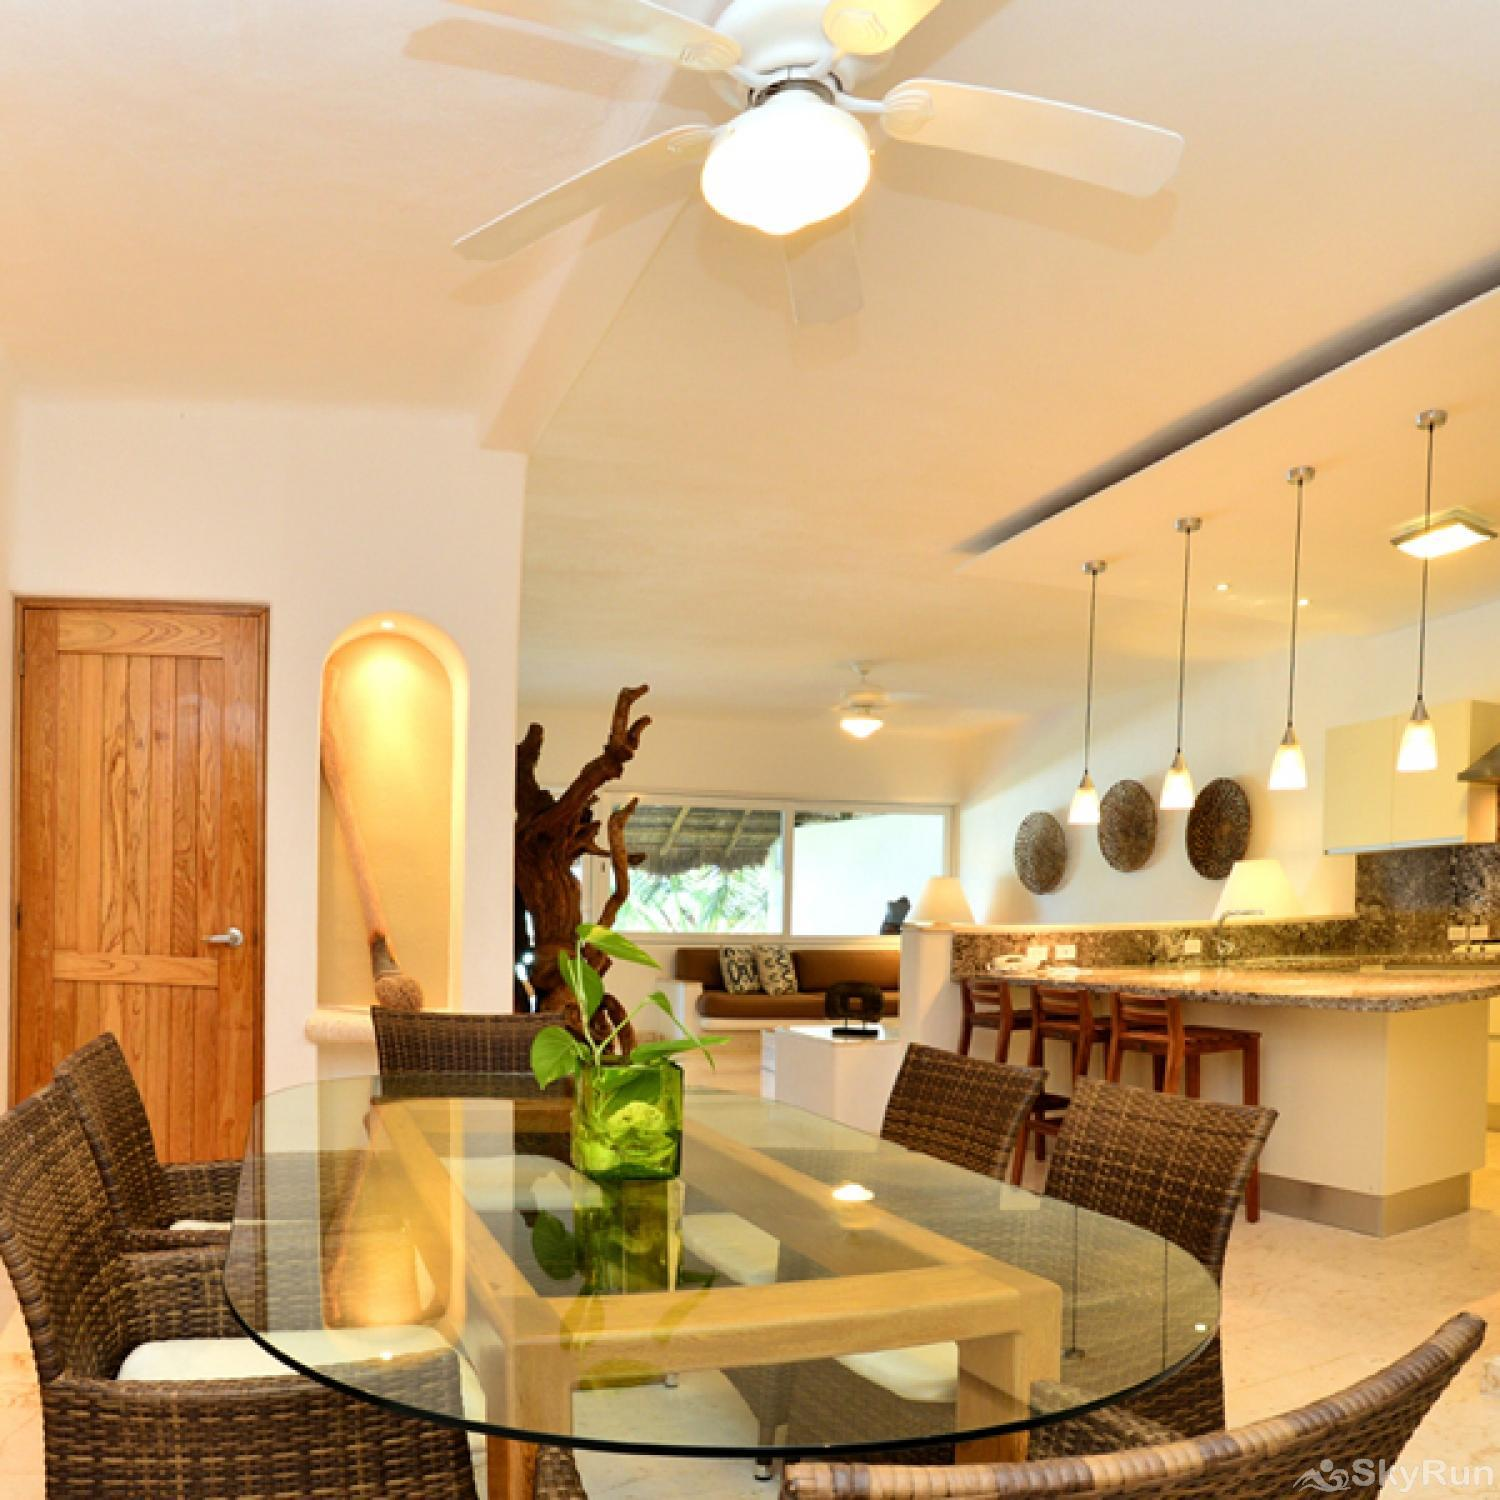 New Spectacular 303 3 Bedroom Beachfront Condo Villa close to Tulum SkyRun Riviera Maya strives to be a leader in culinary indulgence